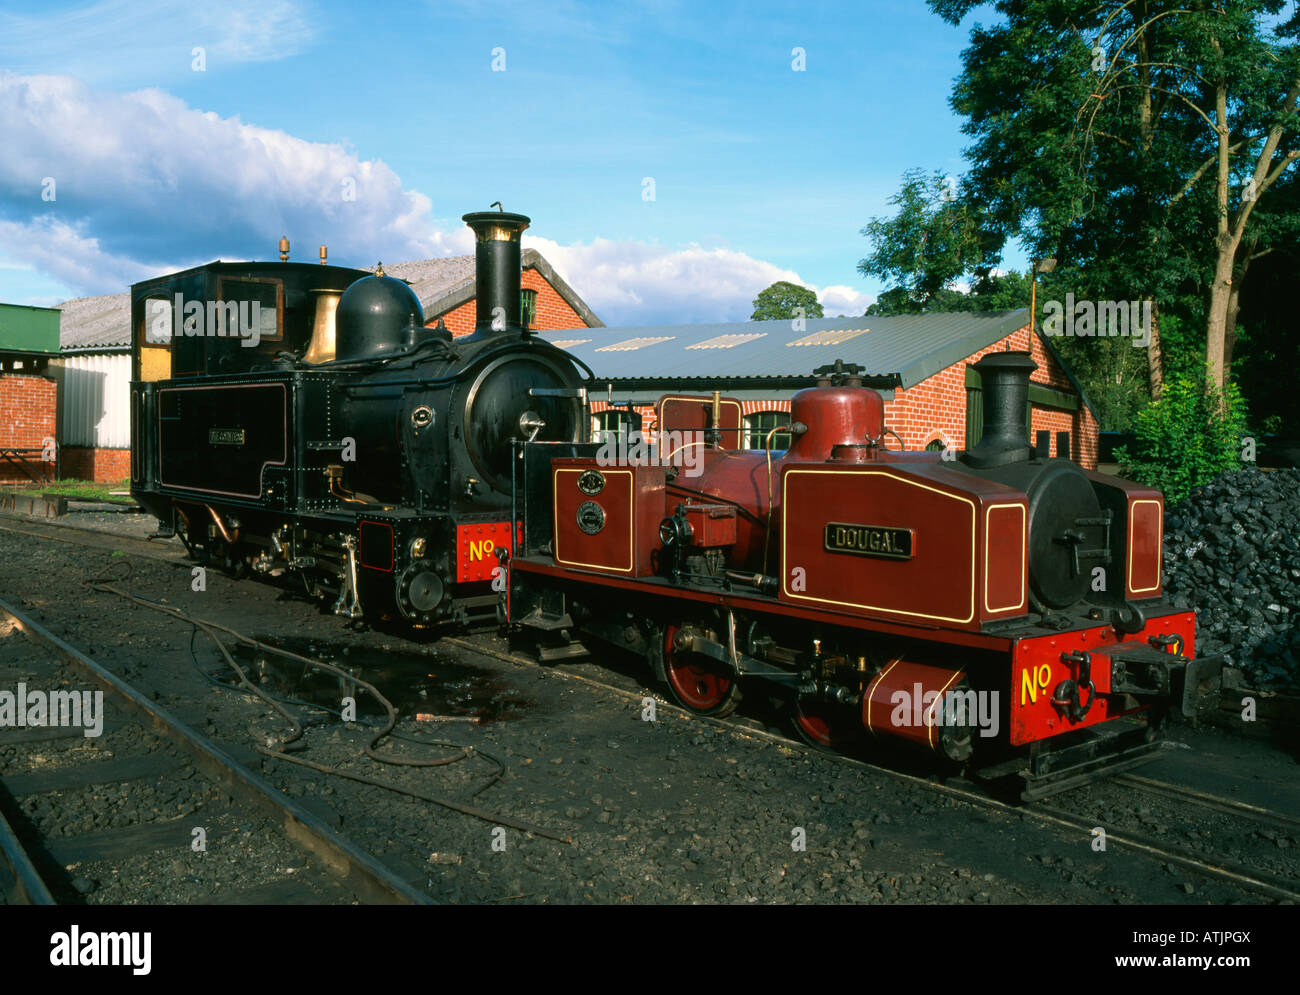 'Dougal' and 'The Countess' steam locomotives, Wales, UK. - Stock Image